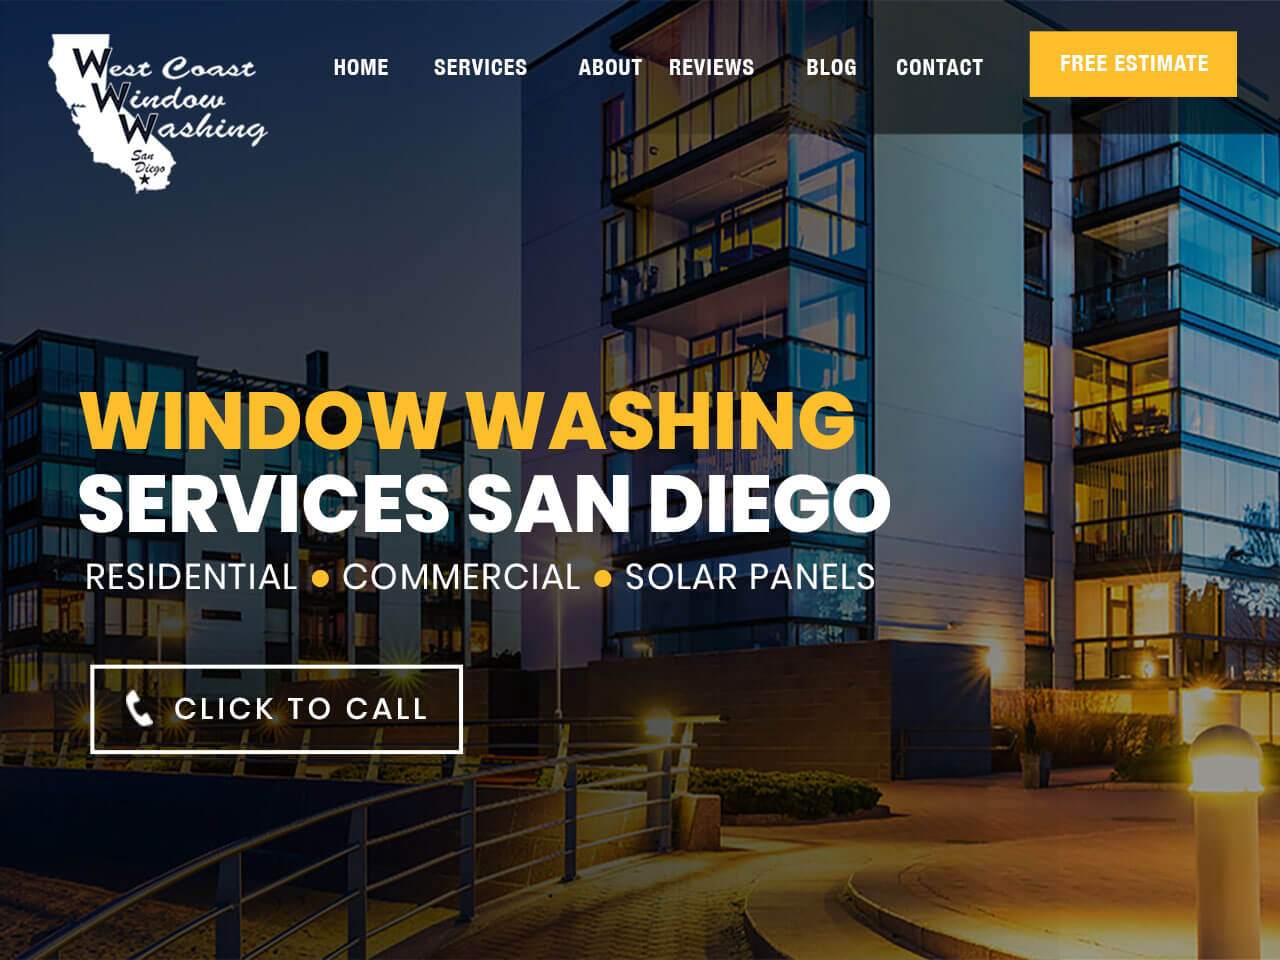 West Coast Window Washing San Diego